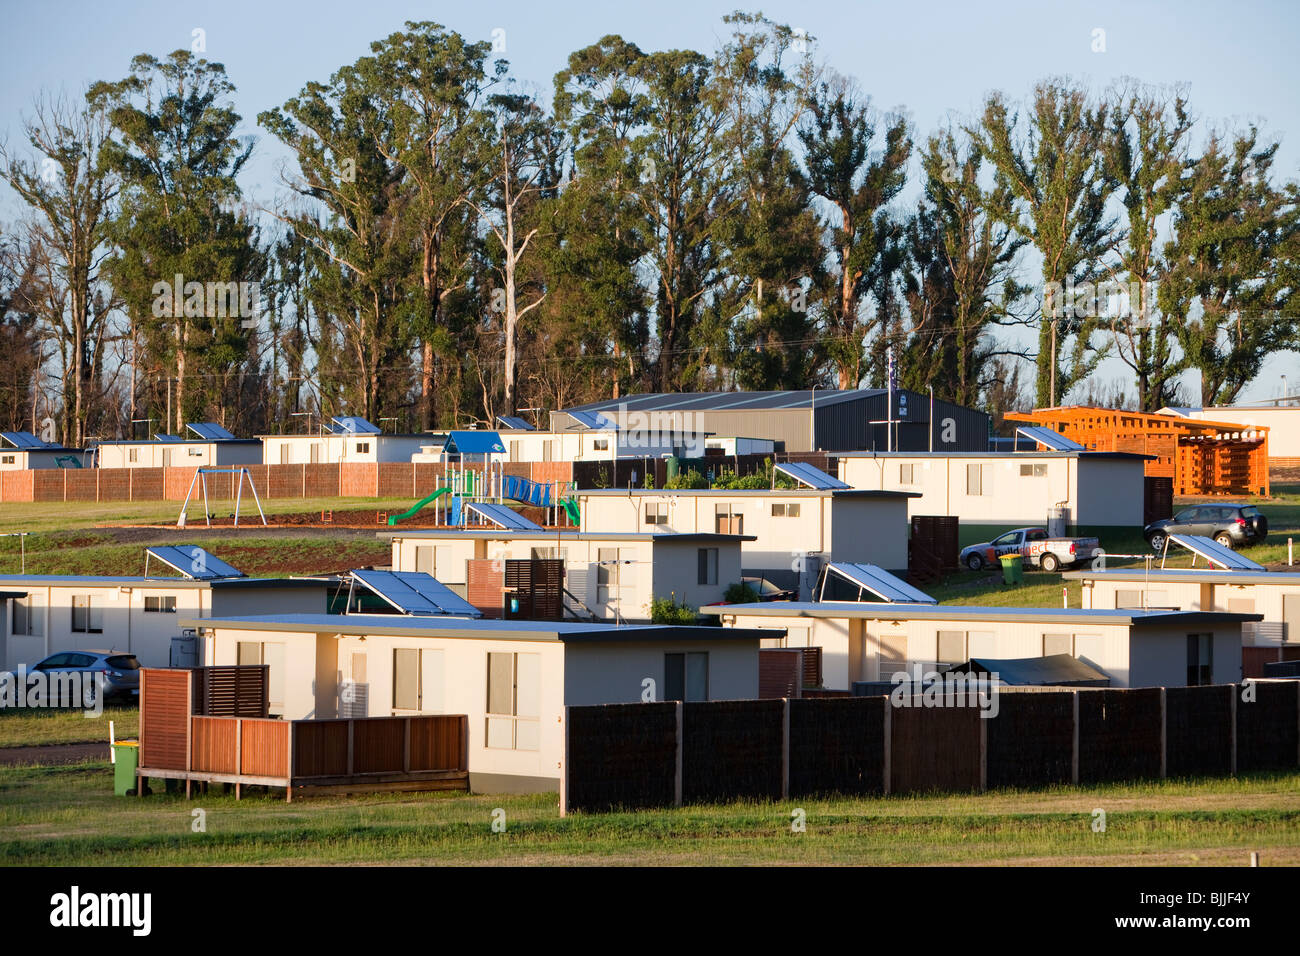 Residents still in temporary housing after Black Saturday catastrophic bush fires in Kinglake, Victoria, Australia. - Stock Image